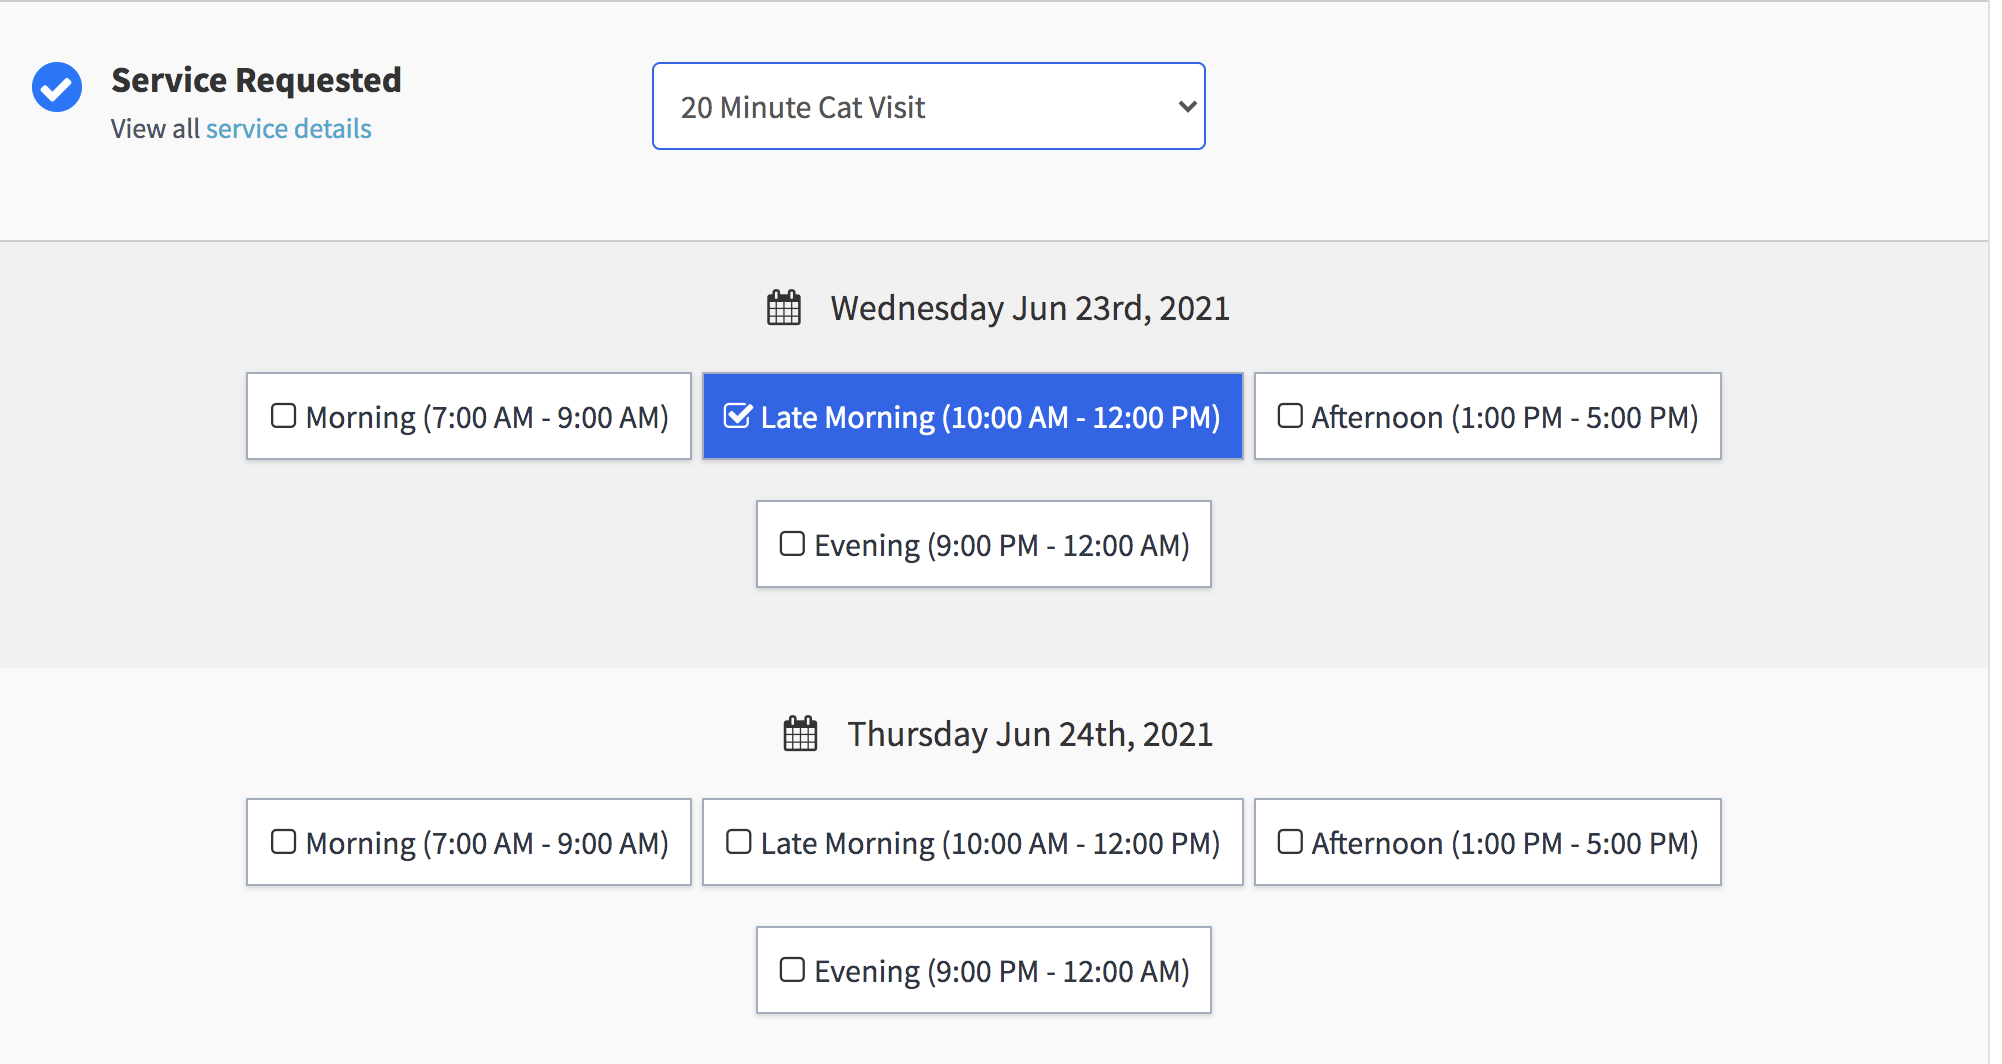 Image of service order request form with a 20 Minute Cat Sitting service select from dropdown and schedule block check box options